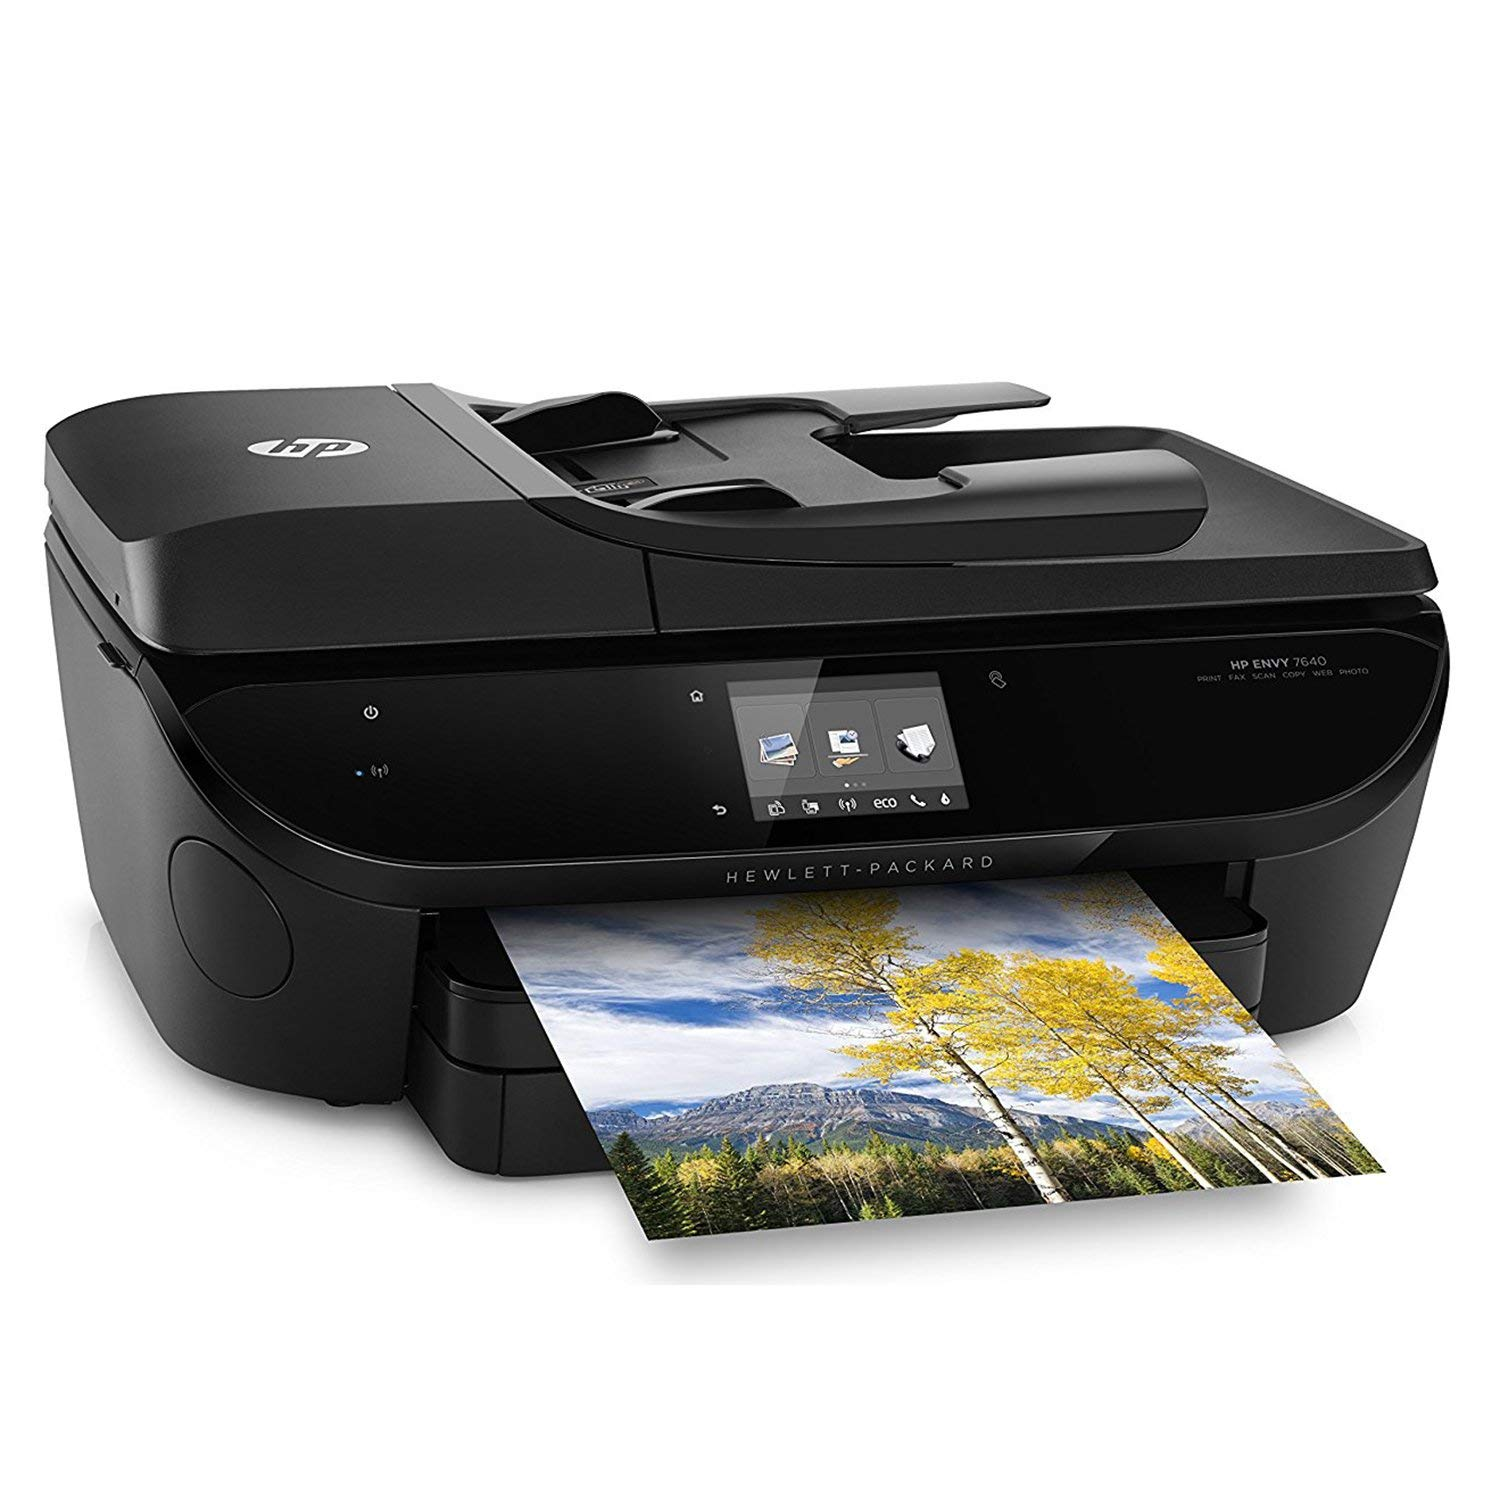 14 best wireless all in one printers for home and business planetwifi. Black Bedroom Furniture Sets. Home Design Ideas